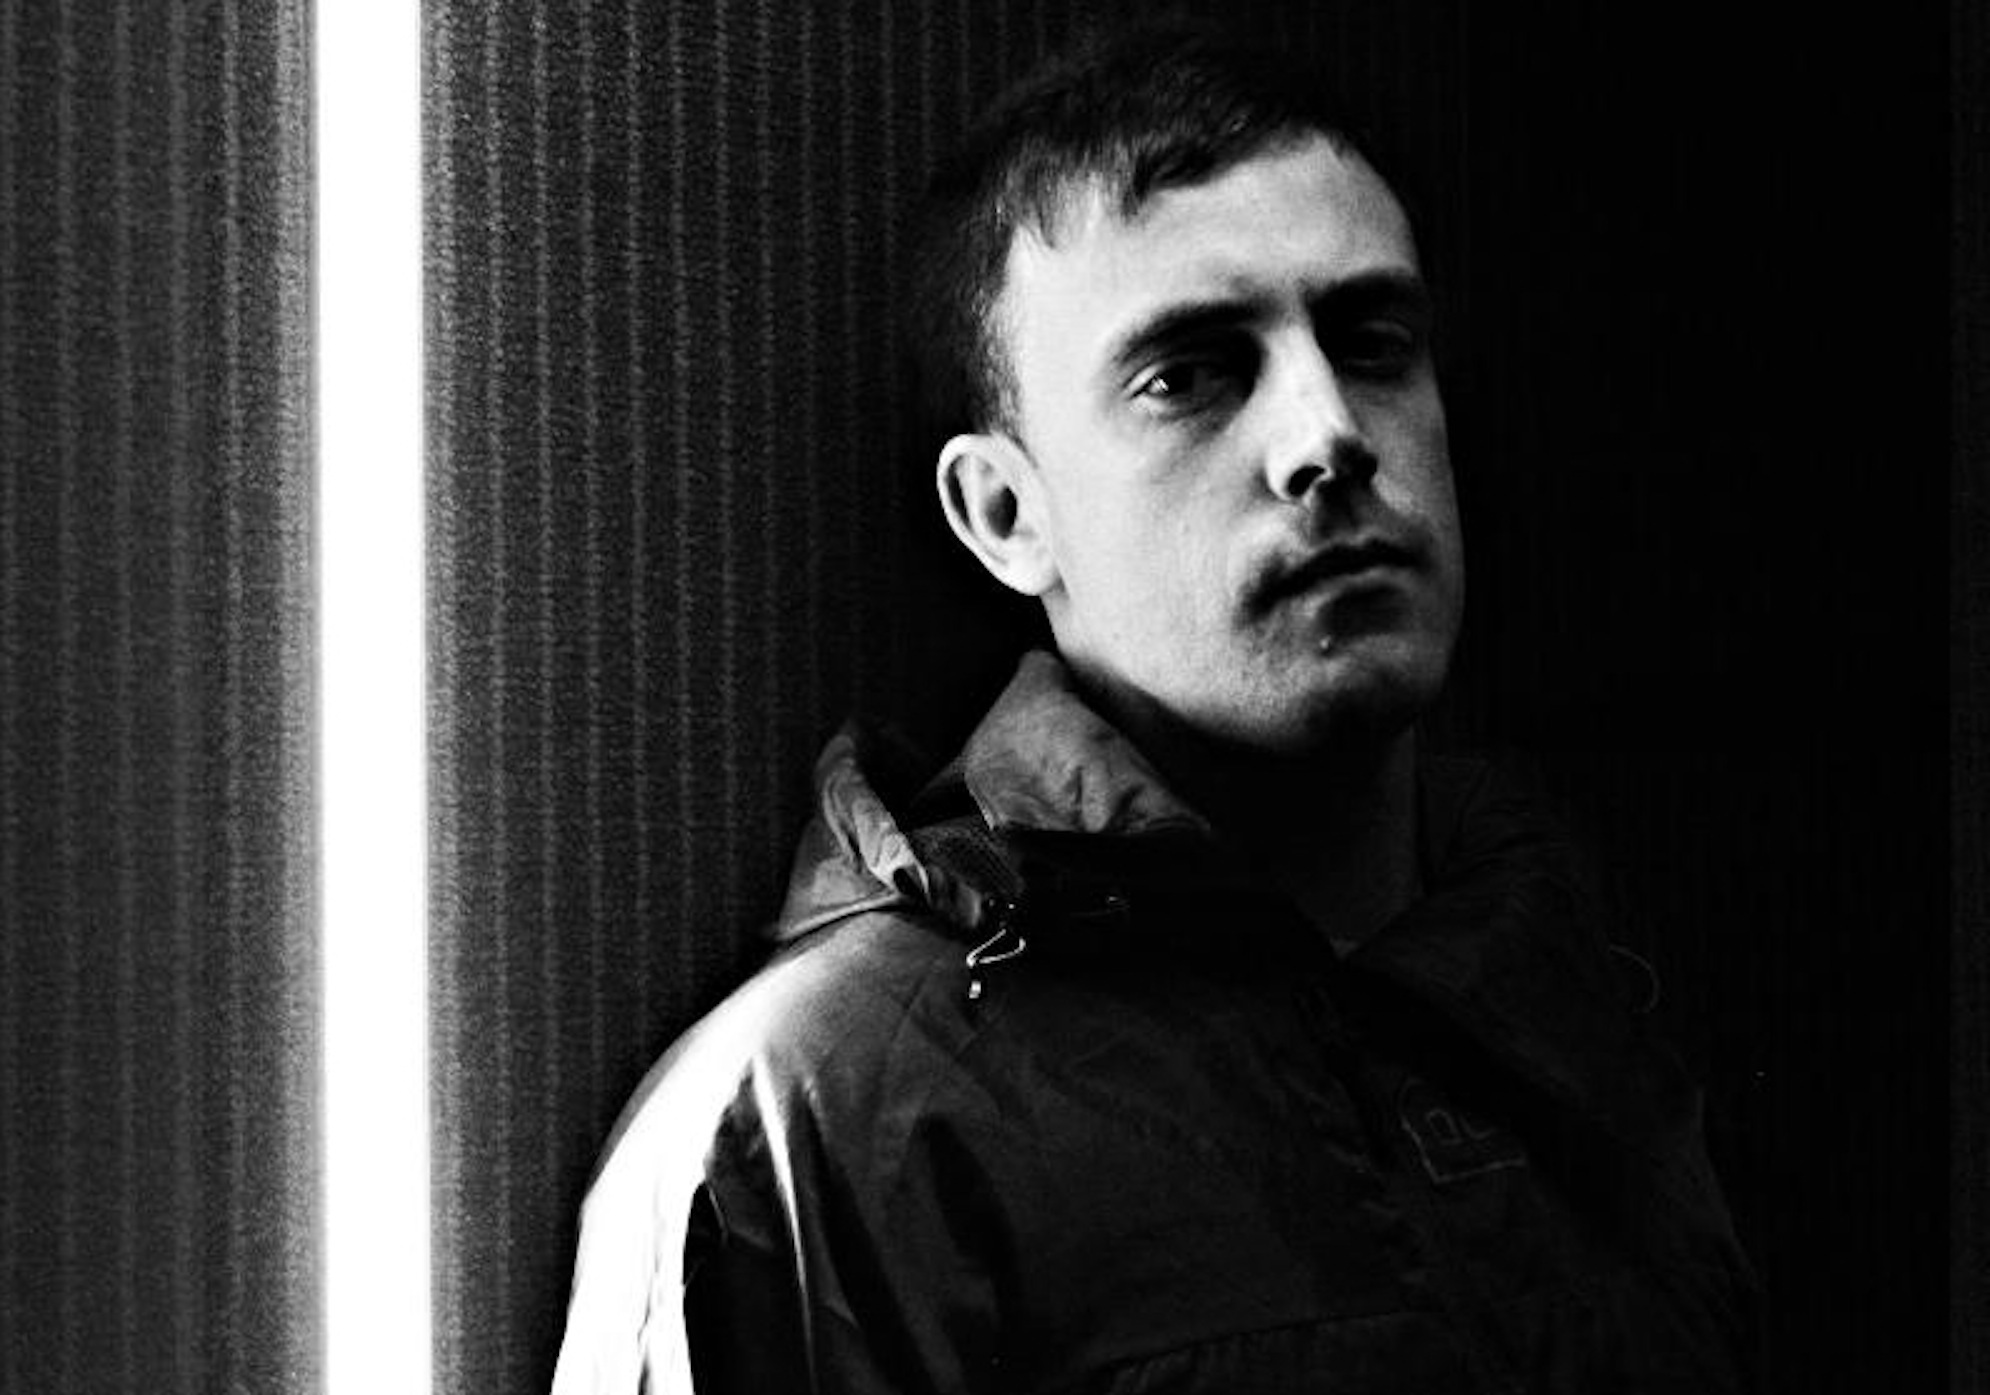 Bryan Kearney & Mr. Hyde